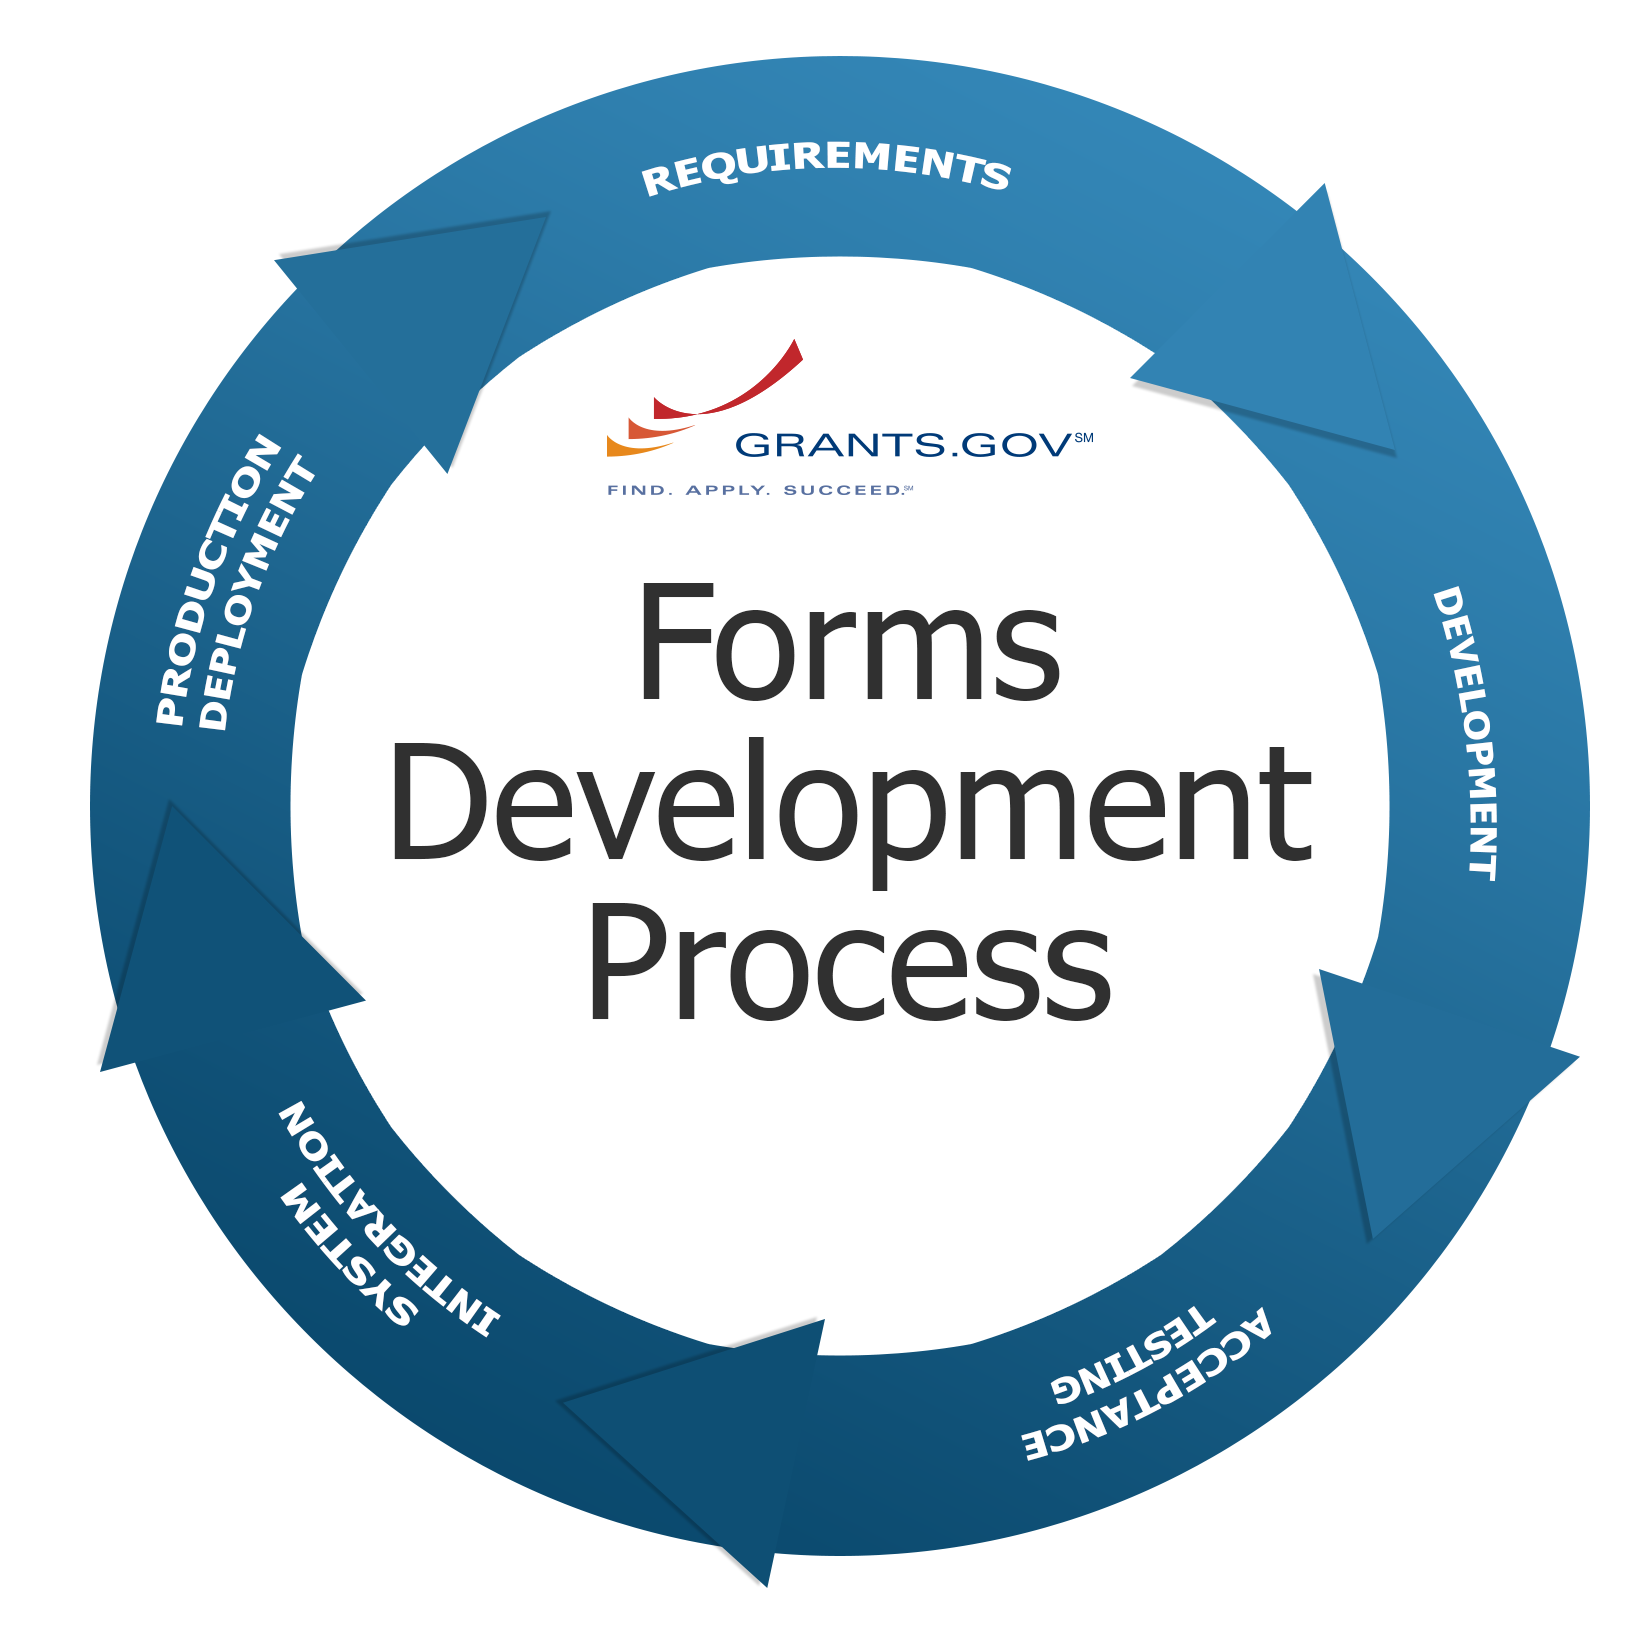 Grants.gov Forms Development Cycle